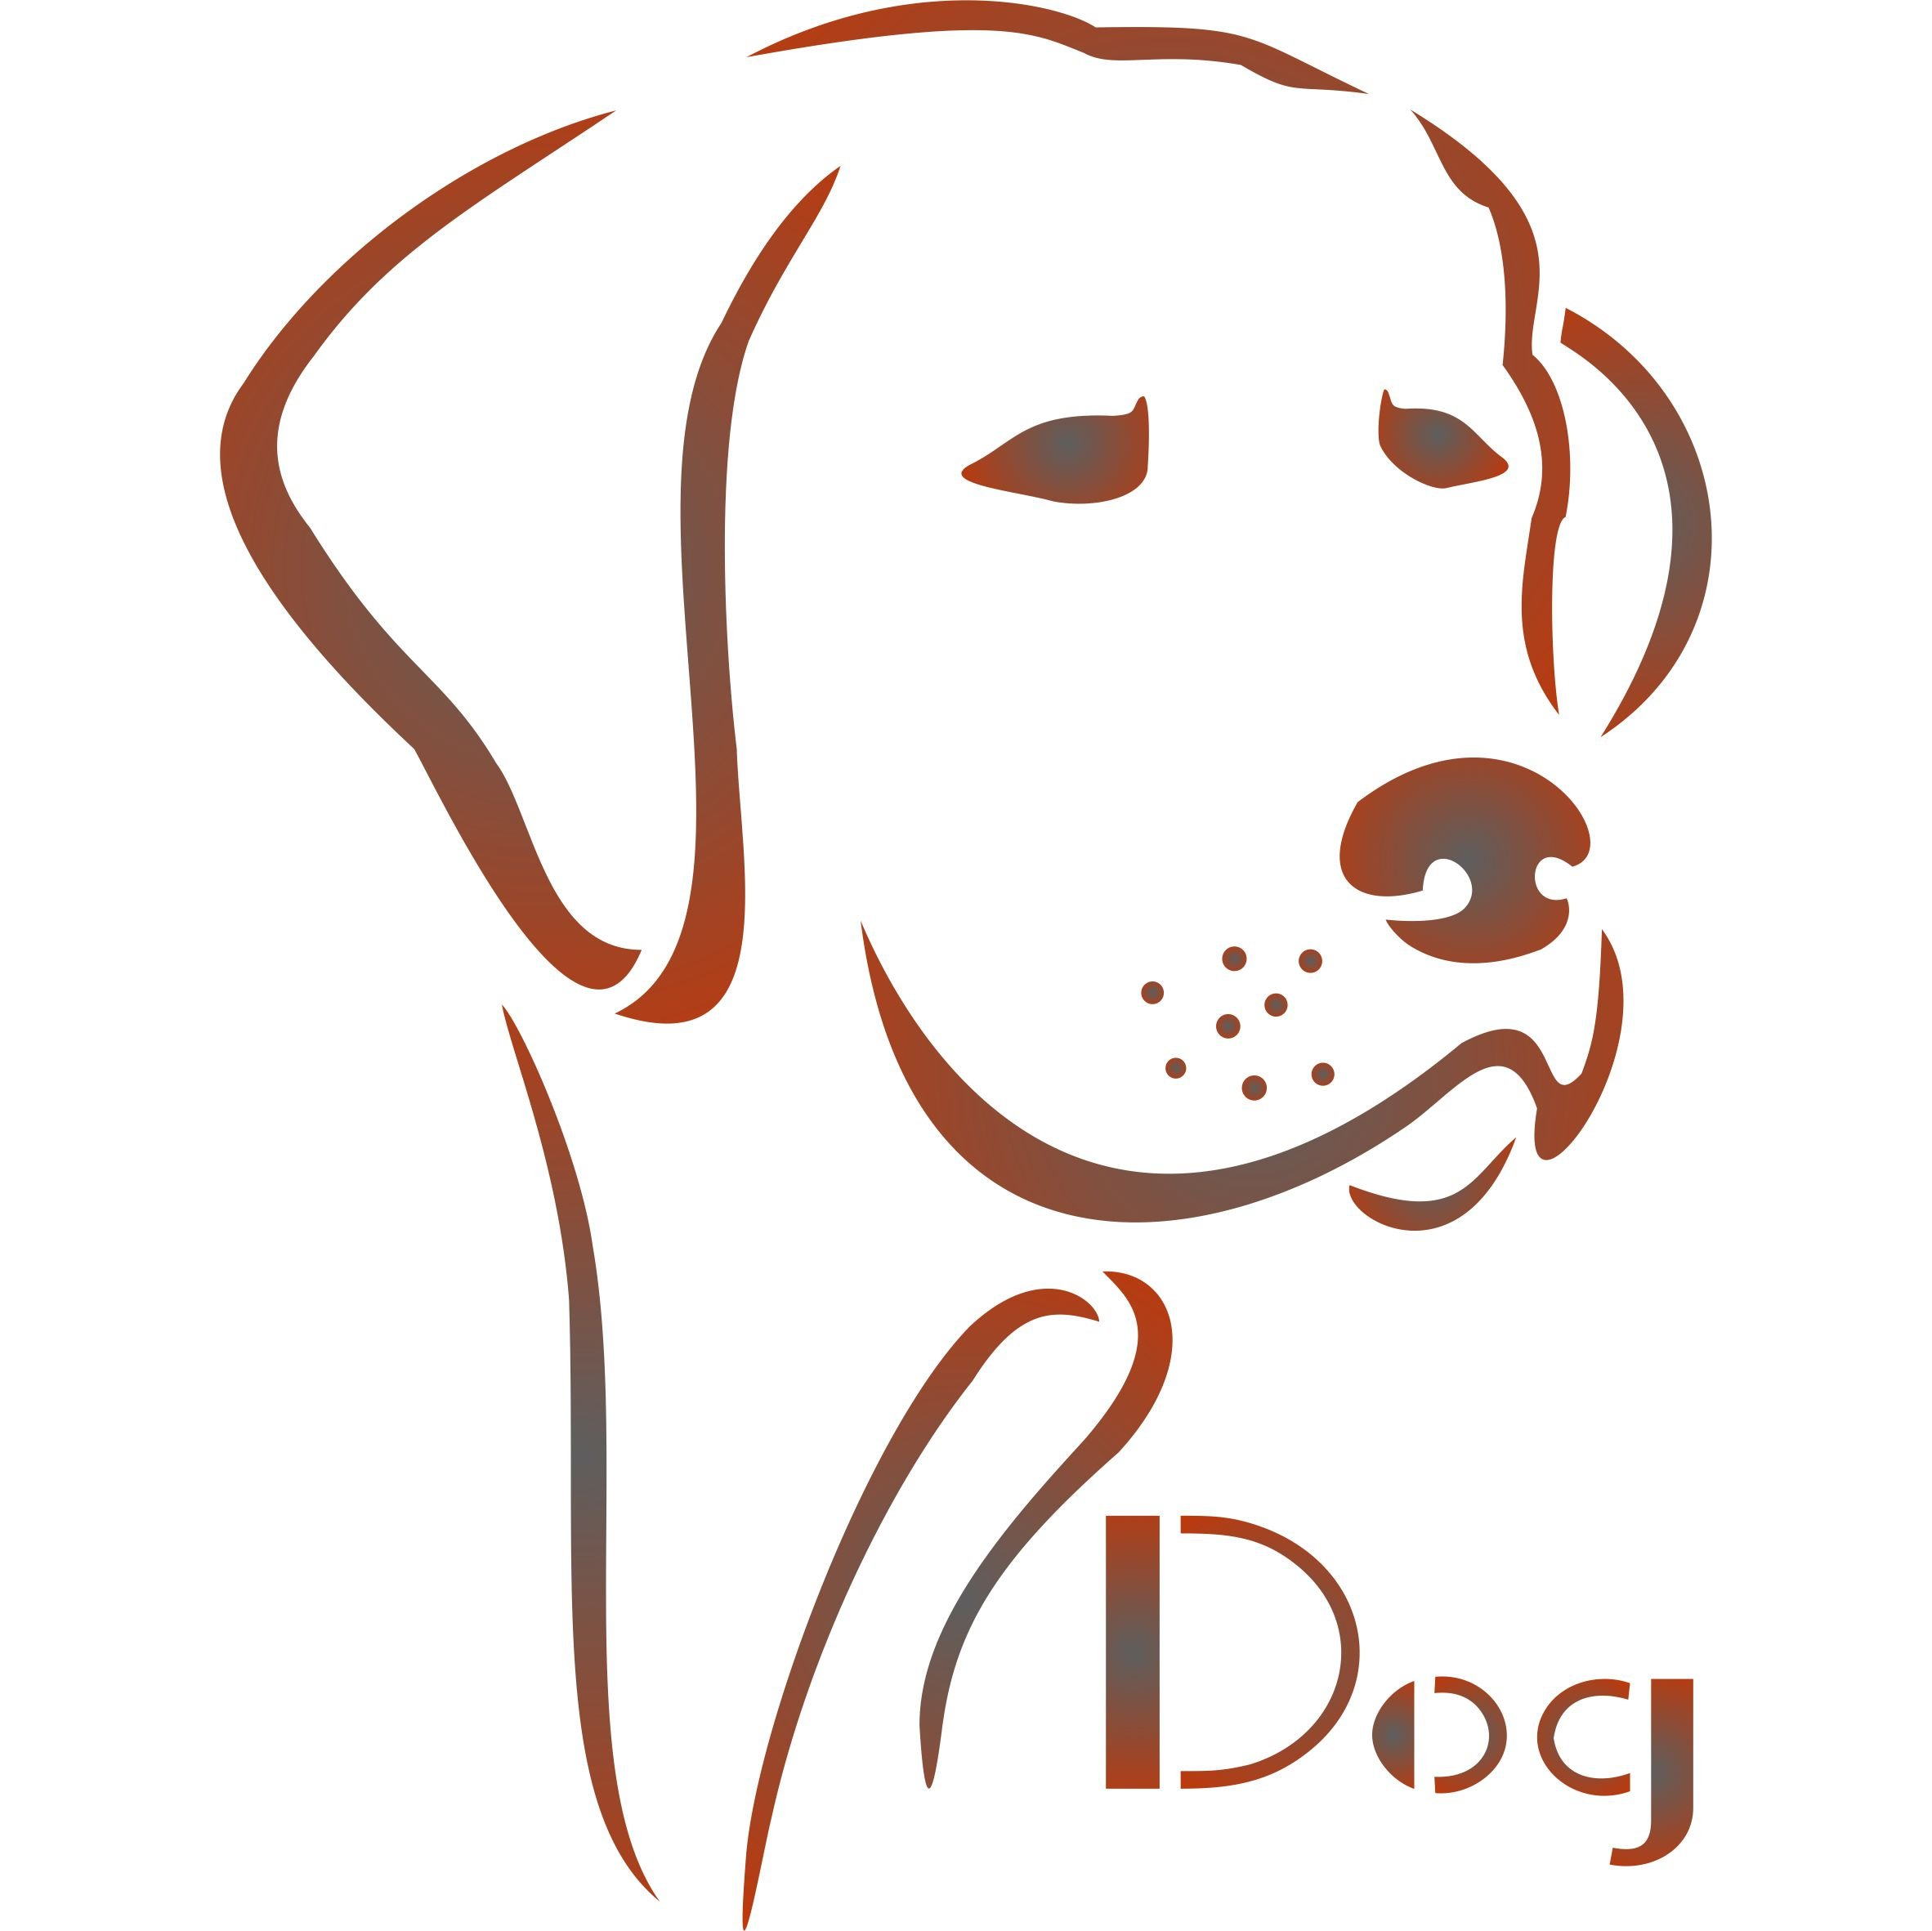 Dog Stencil - (size 8.5''w x 11''h) Reusable Dog Stencils for Painting - Best Quality Dog Stencils for Walls - Use on Walls, Floors, Fabrics, Glass, Wood, Terracotta, and More... by Stencils for Walls